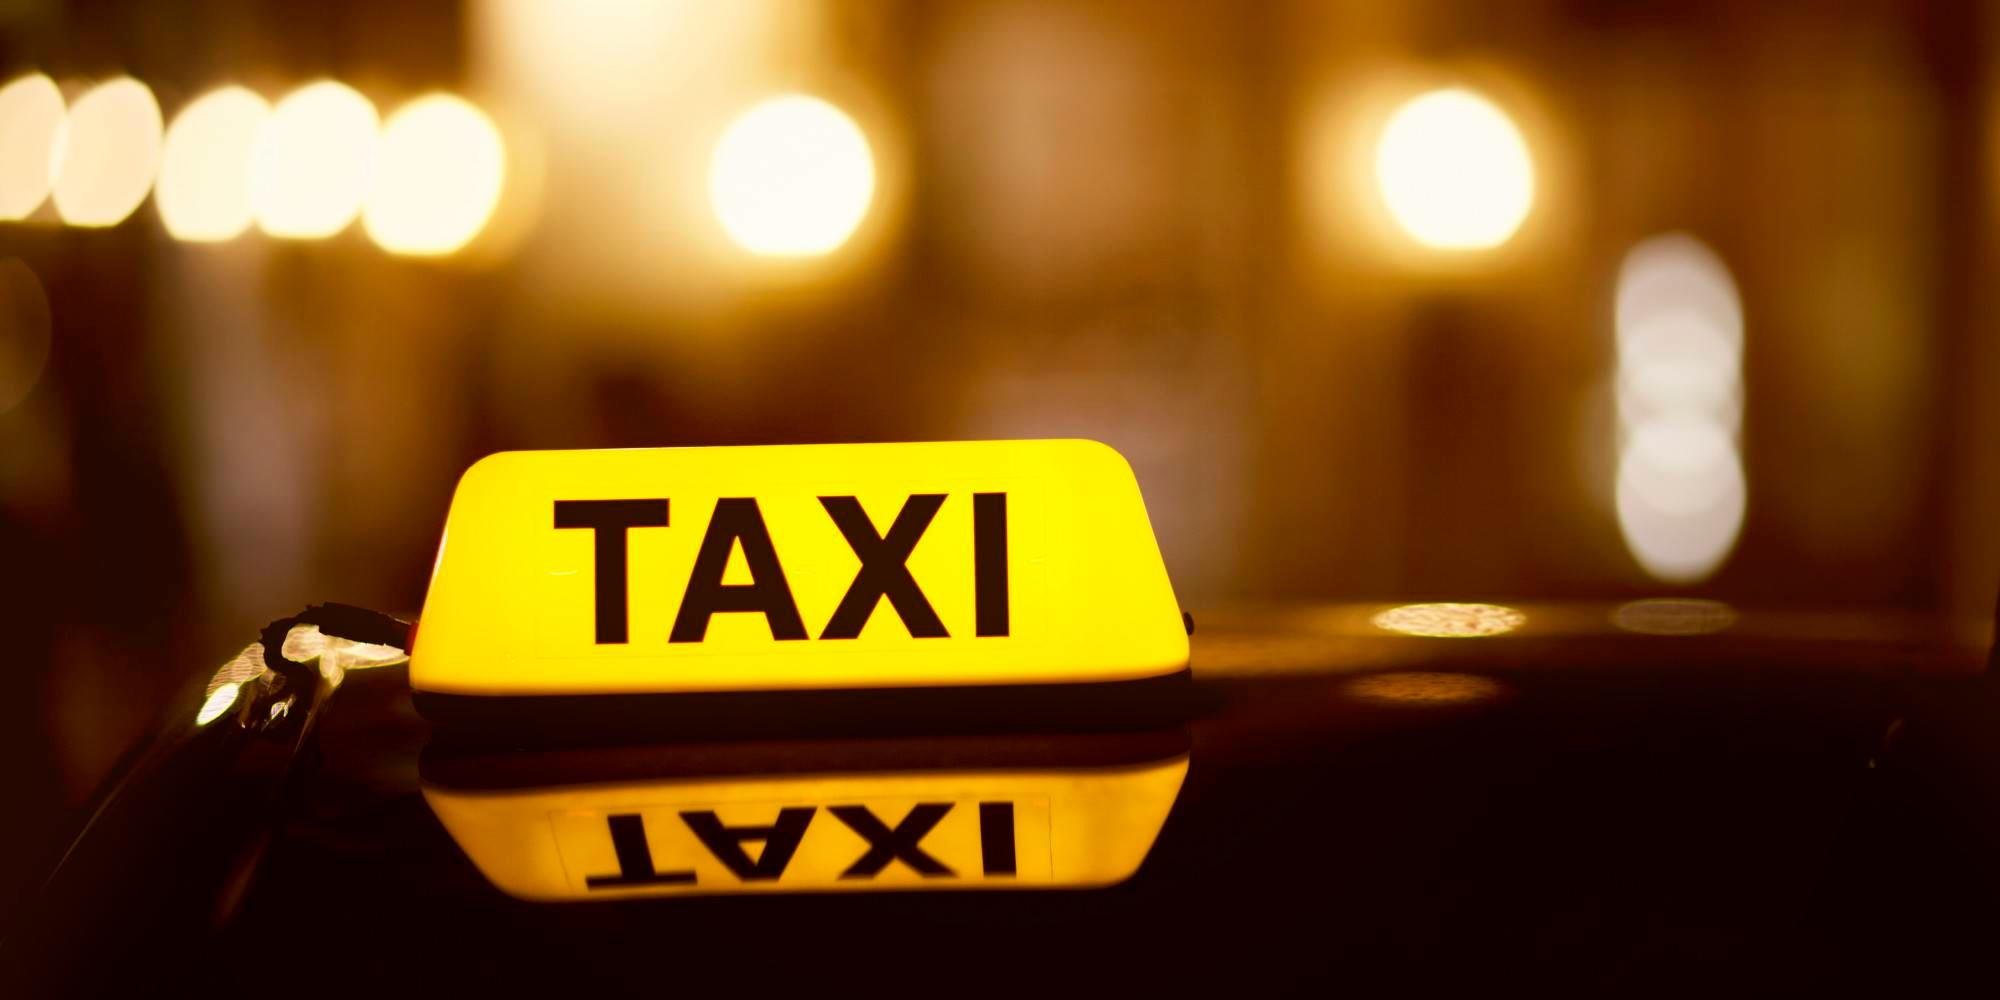 Irving Taxi Cab image 7